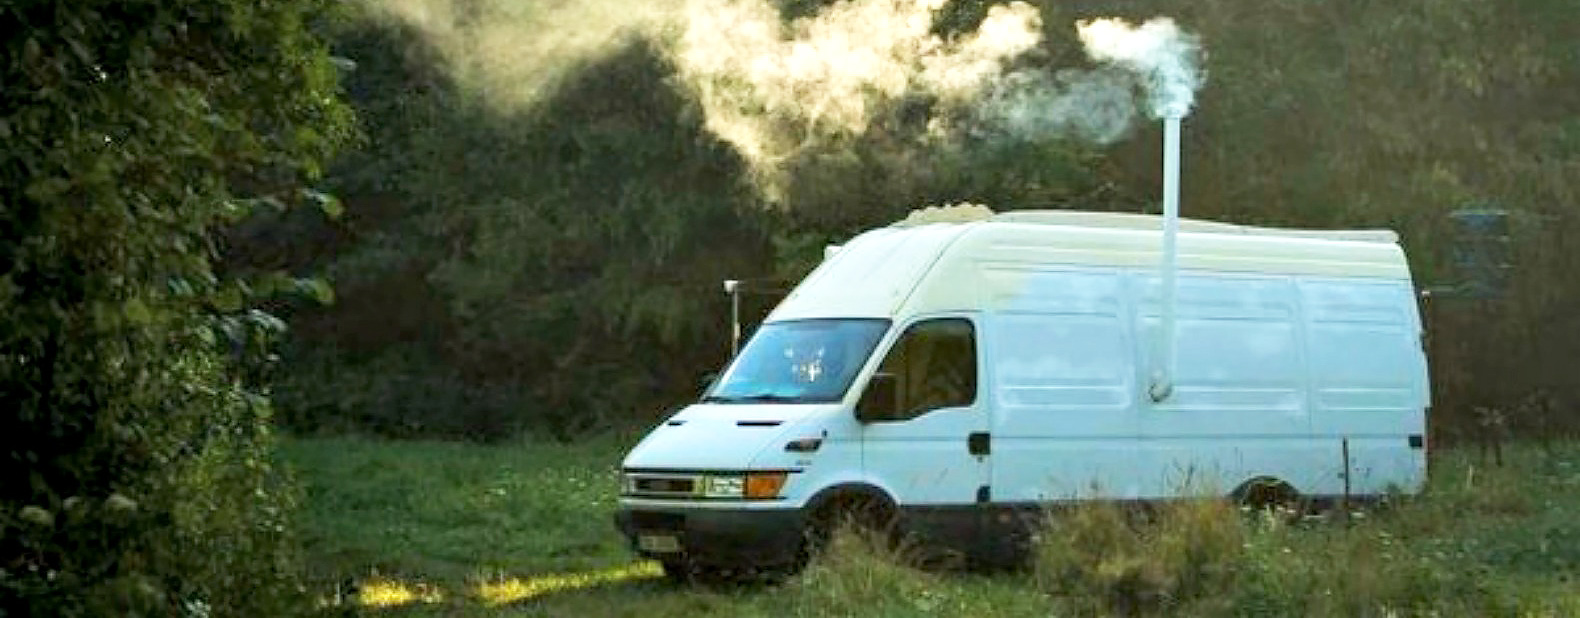 Amazing DIY Van Conversion Boasts A Wood Burning Stove And Chimney